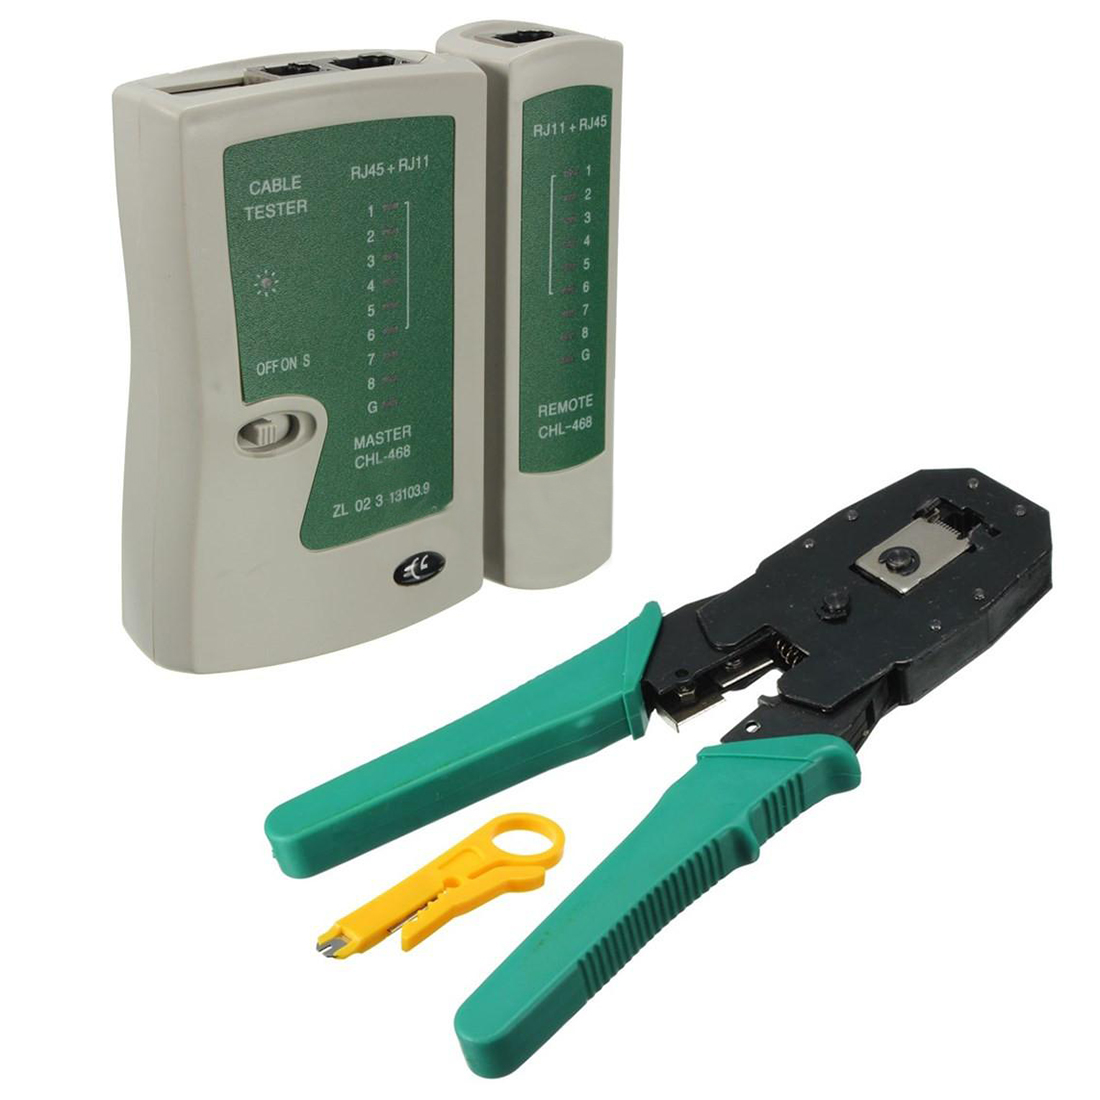 Network-Cable-Tester Crimper Rj11 Professional Lan Rj45 with PC Herramientas title=